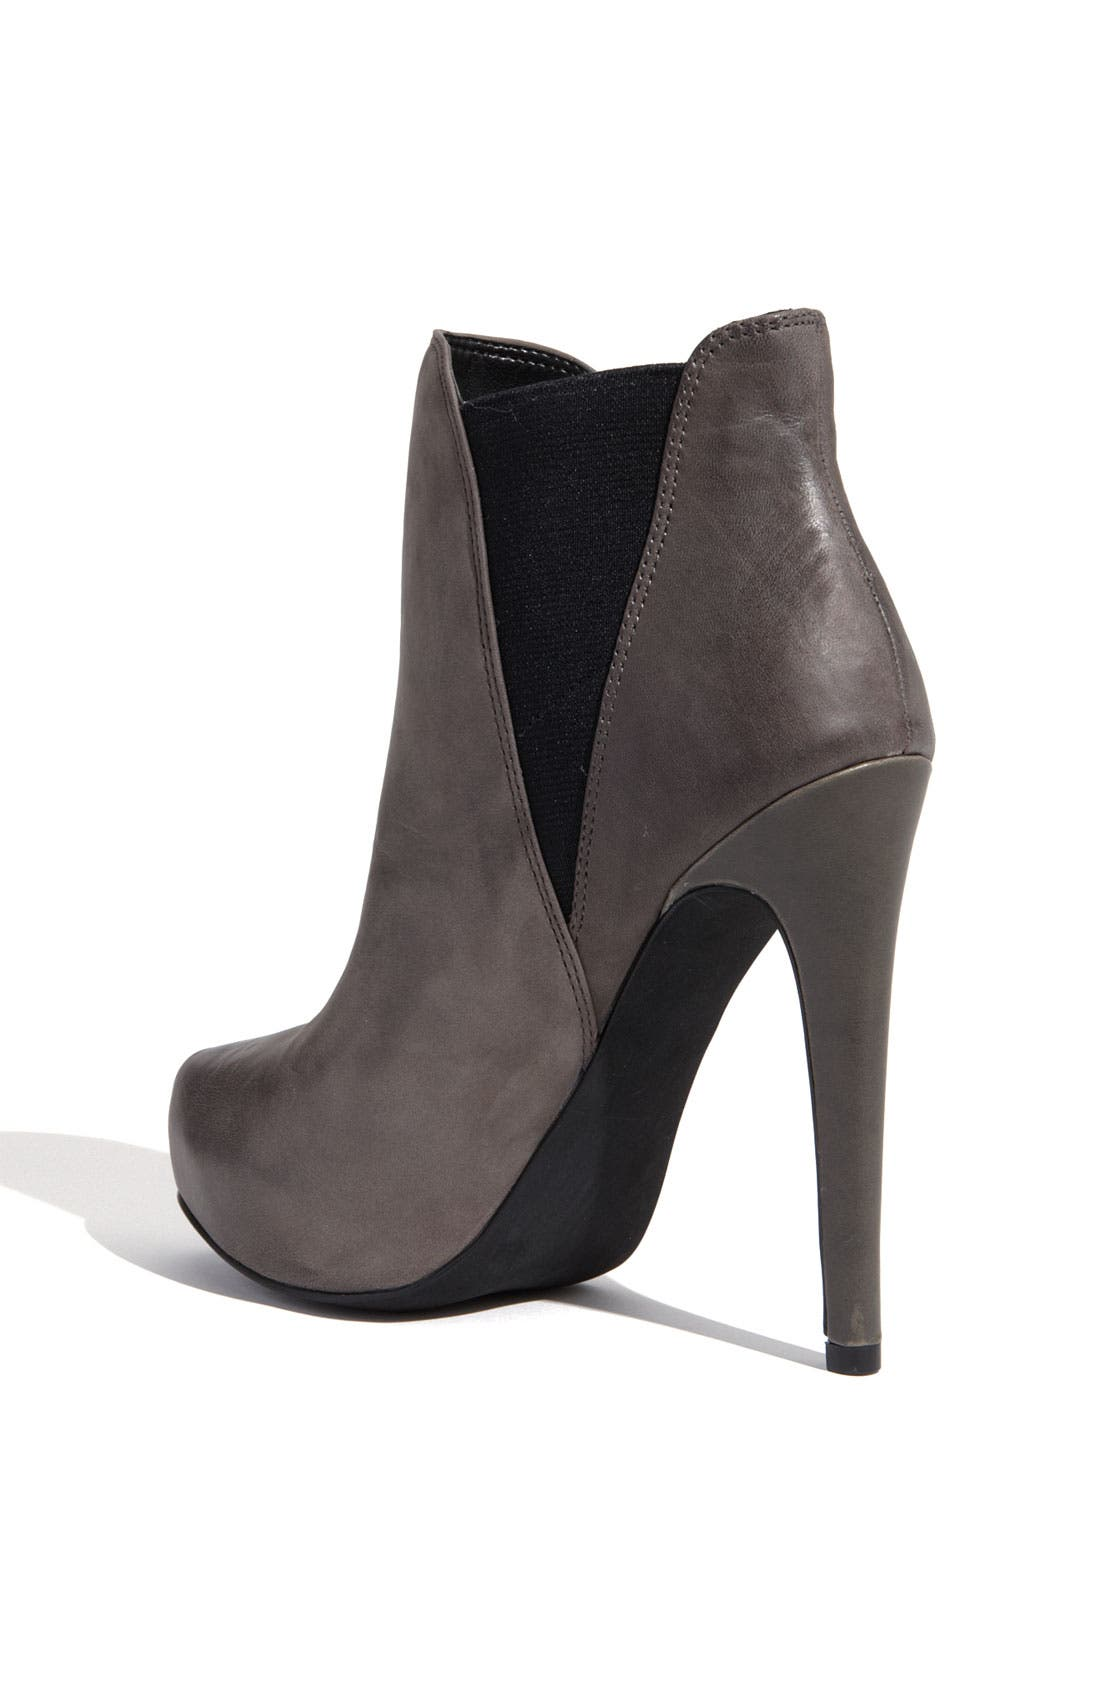 JESSICA SIMPSON, 'Francis' Bootie, Alternate thumbnail 4, color, 020